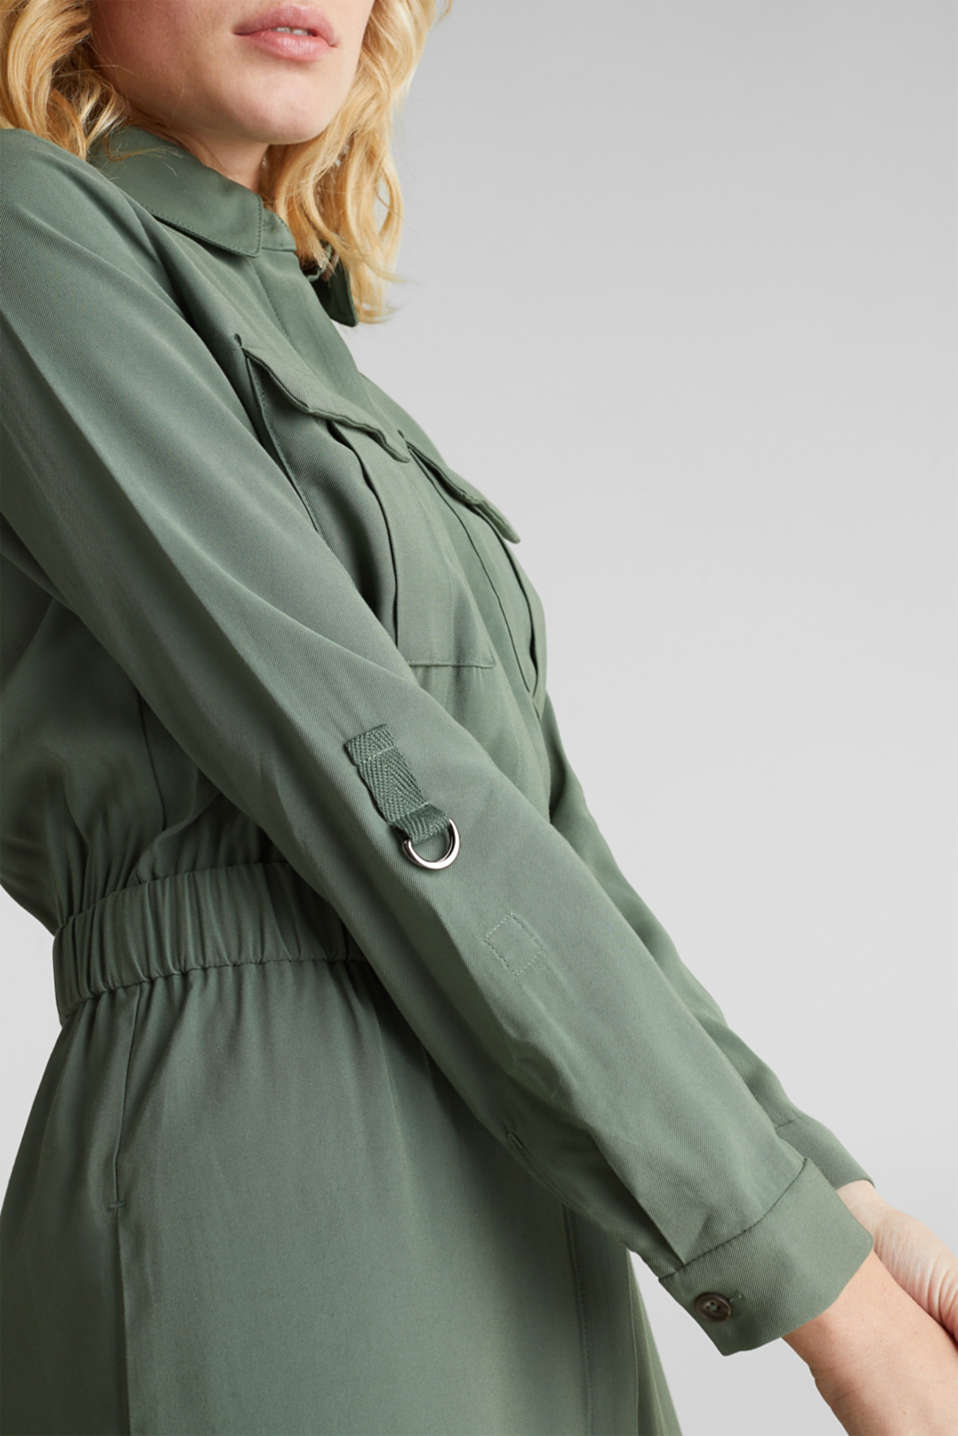 Shirt dress in a utility style, KHAKI GREEN, detail image number 2